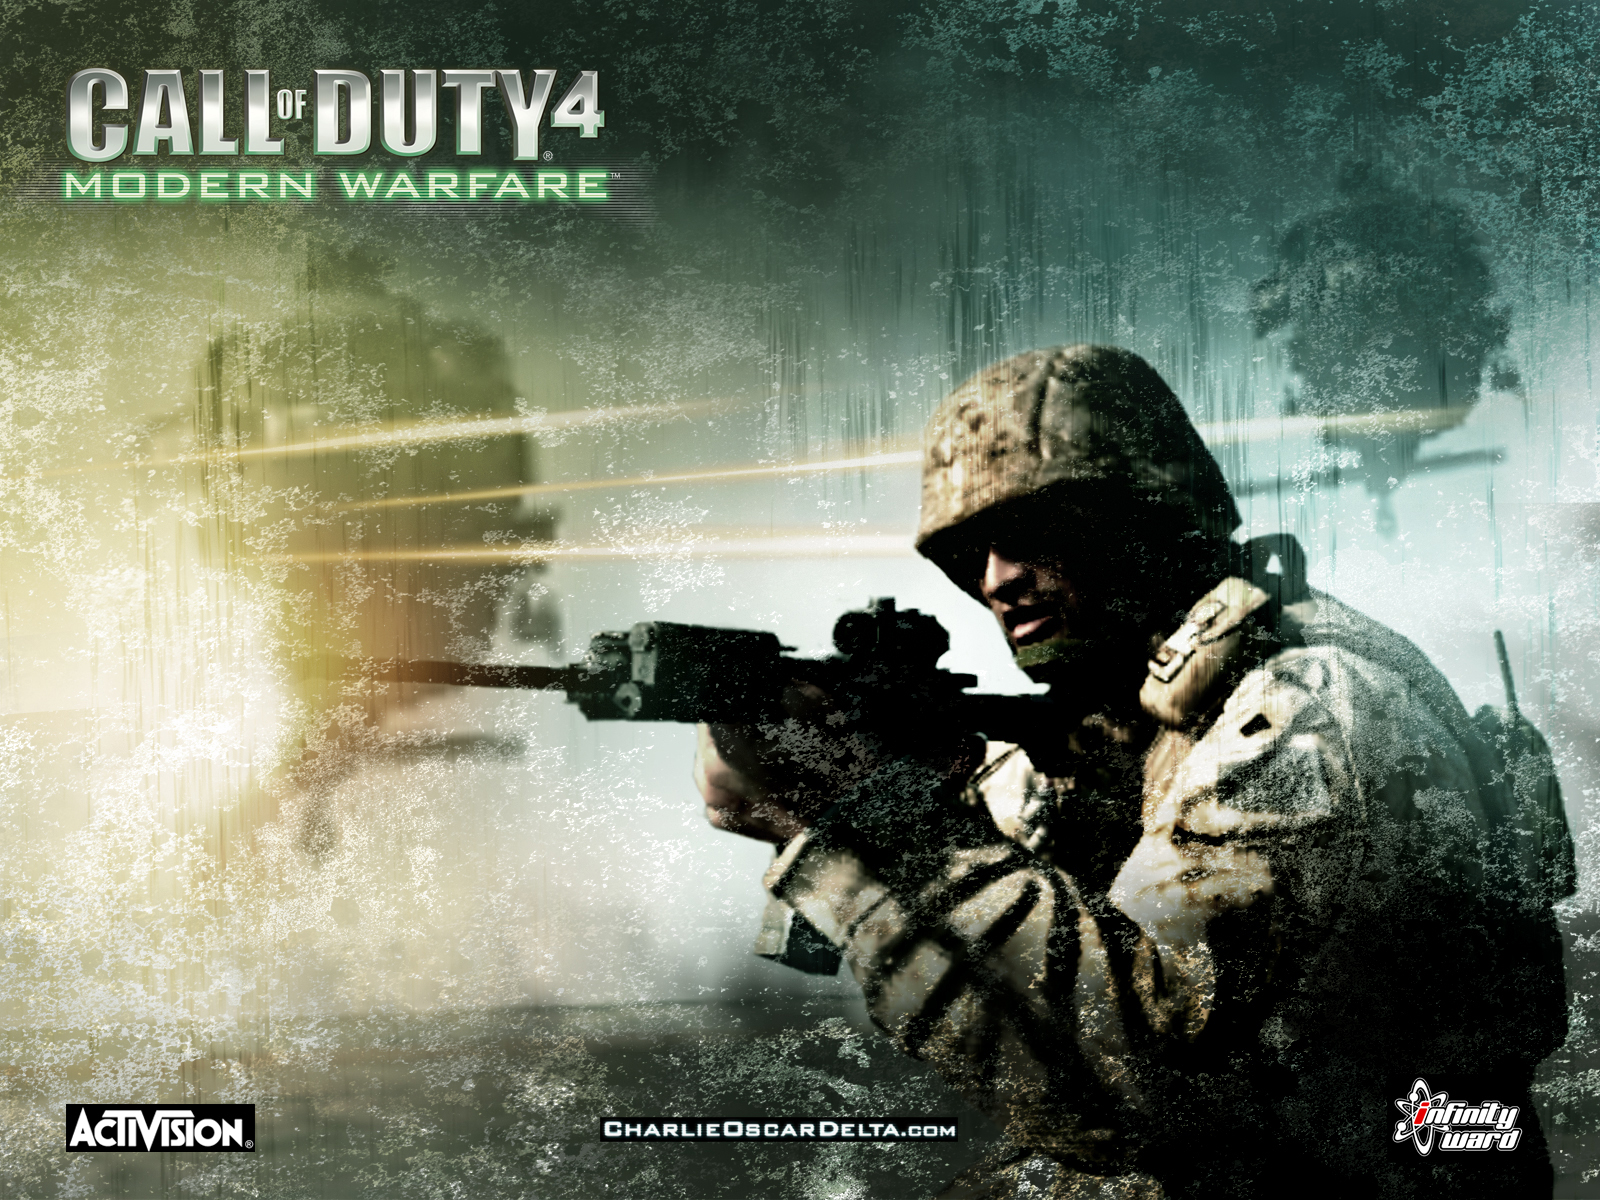 Call of Duty 4: Modern Warfare - Wallpaper 2.